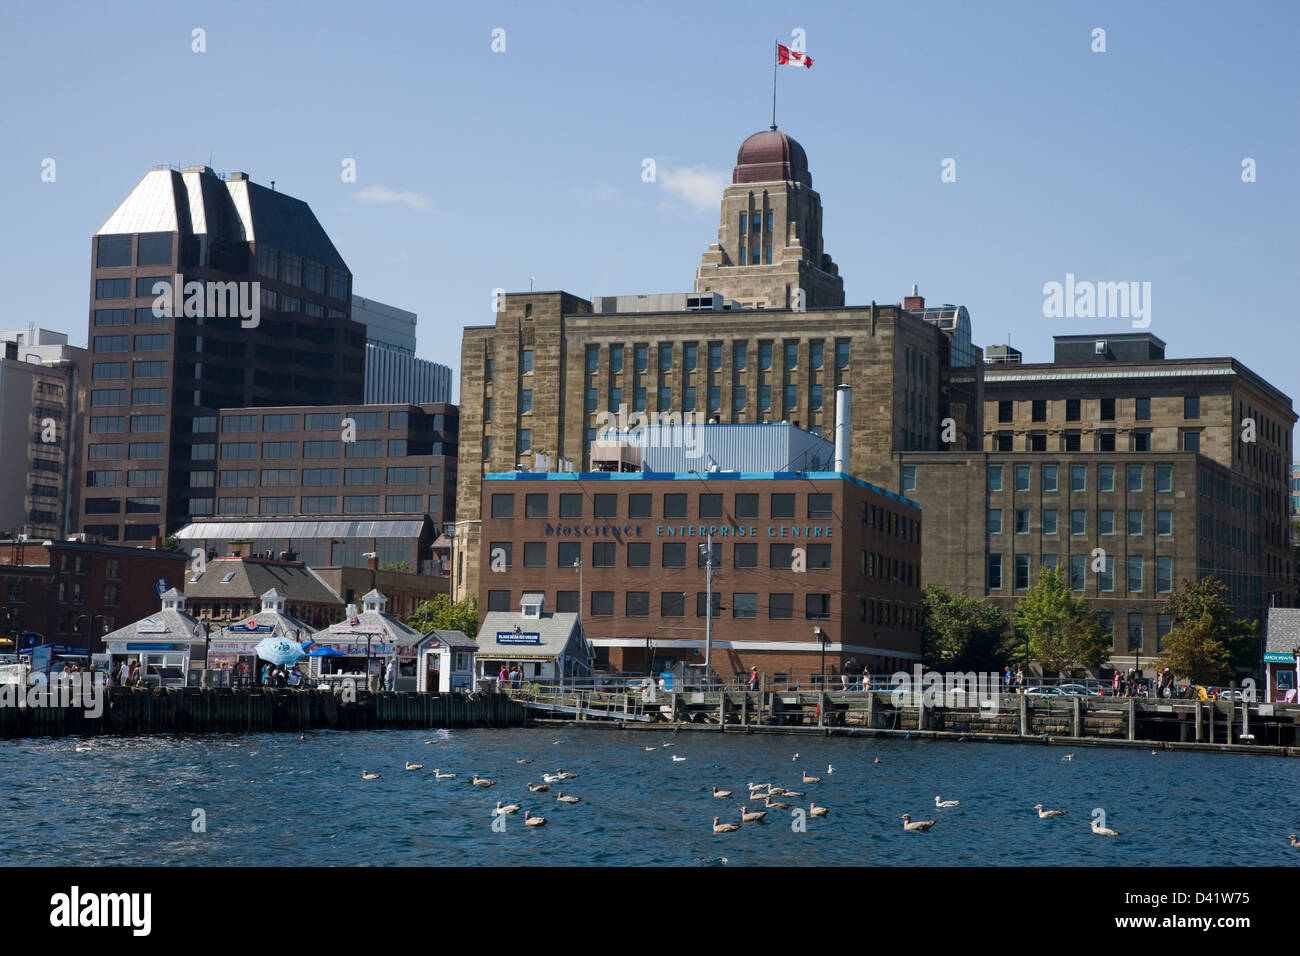 The waterfront of Halifax harbour, with the Dominion Public Building in the background - Stock Image